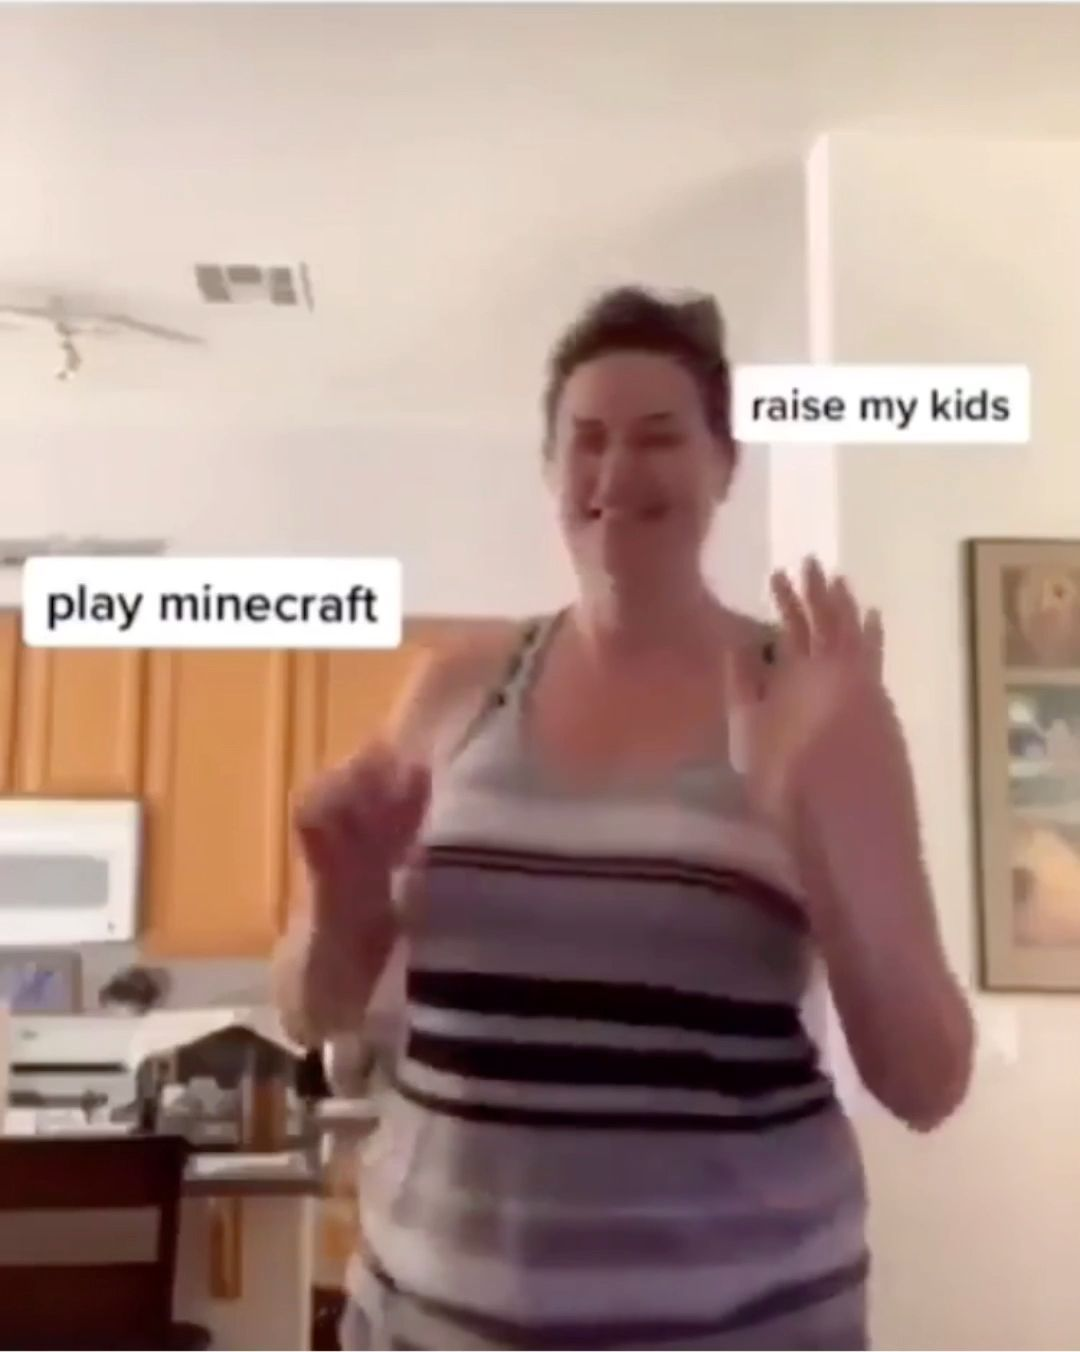 Funny Cringe Tiktok Memes Minecraft Funny Cringe Tiktok Memes Minecraft Hausdekoration Hausdekor Funny Videos Clean Funny Gifs Fails Clean Funny Memes